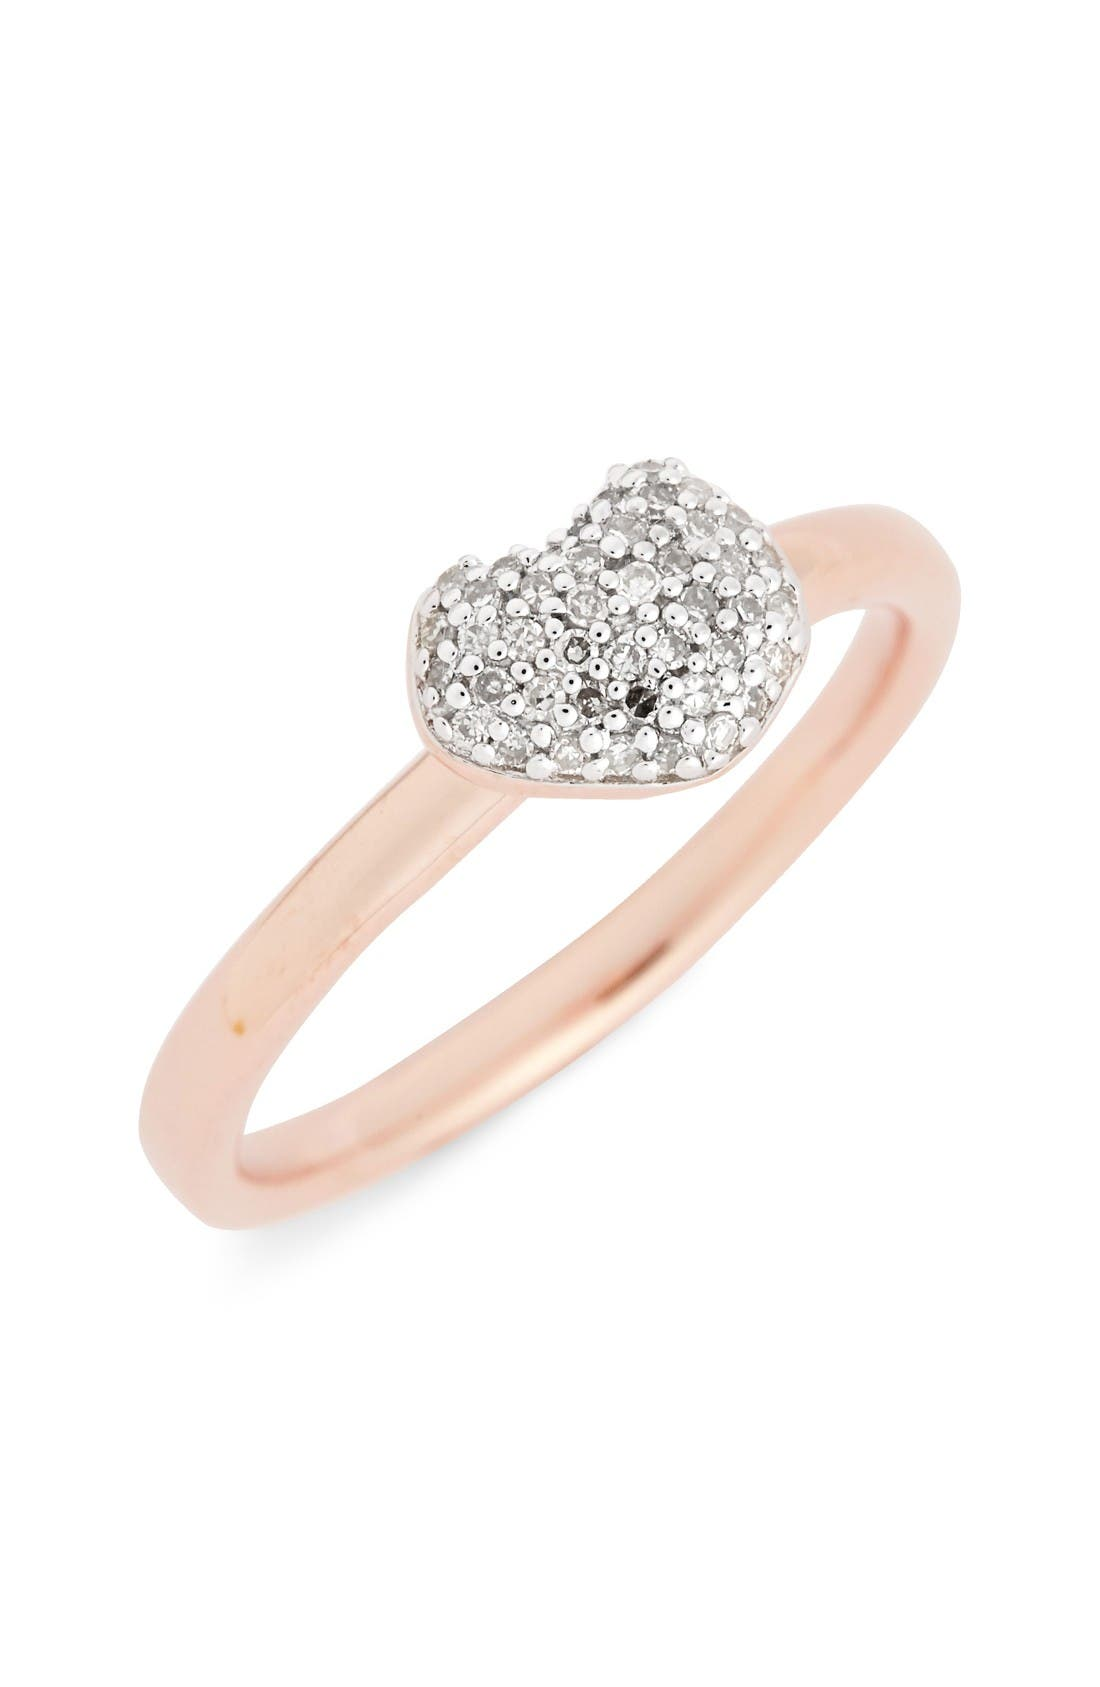 Alternate Image 1 Selected - Monica Vinader Nura Pavé Diamond Ring